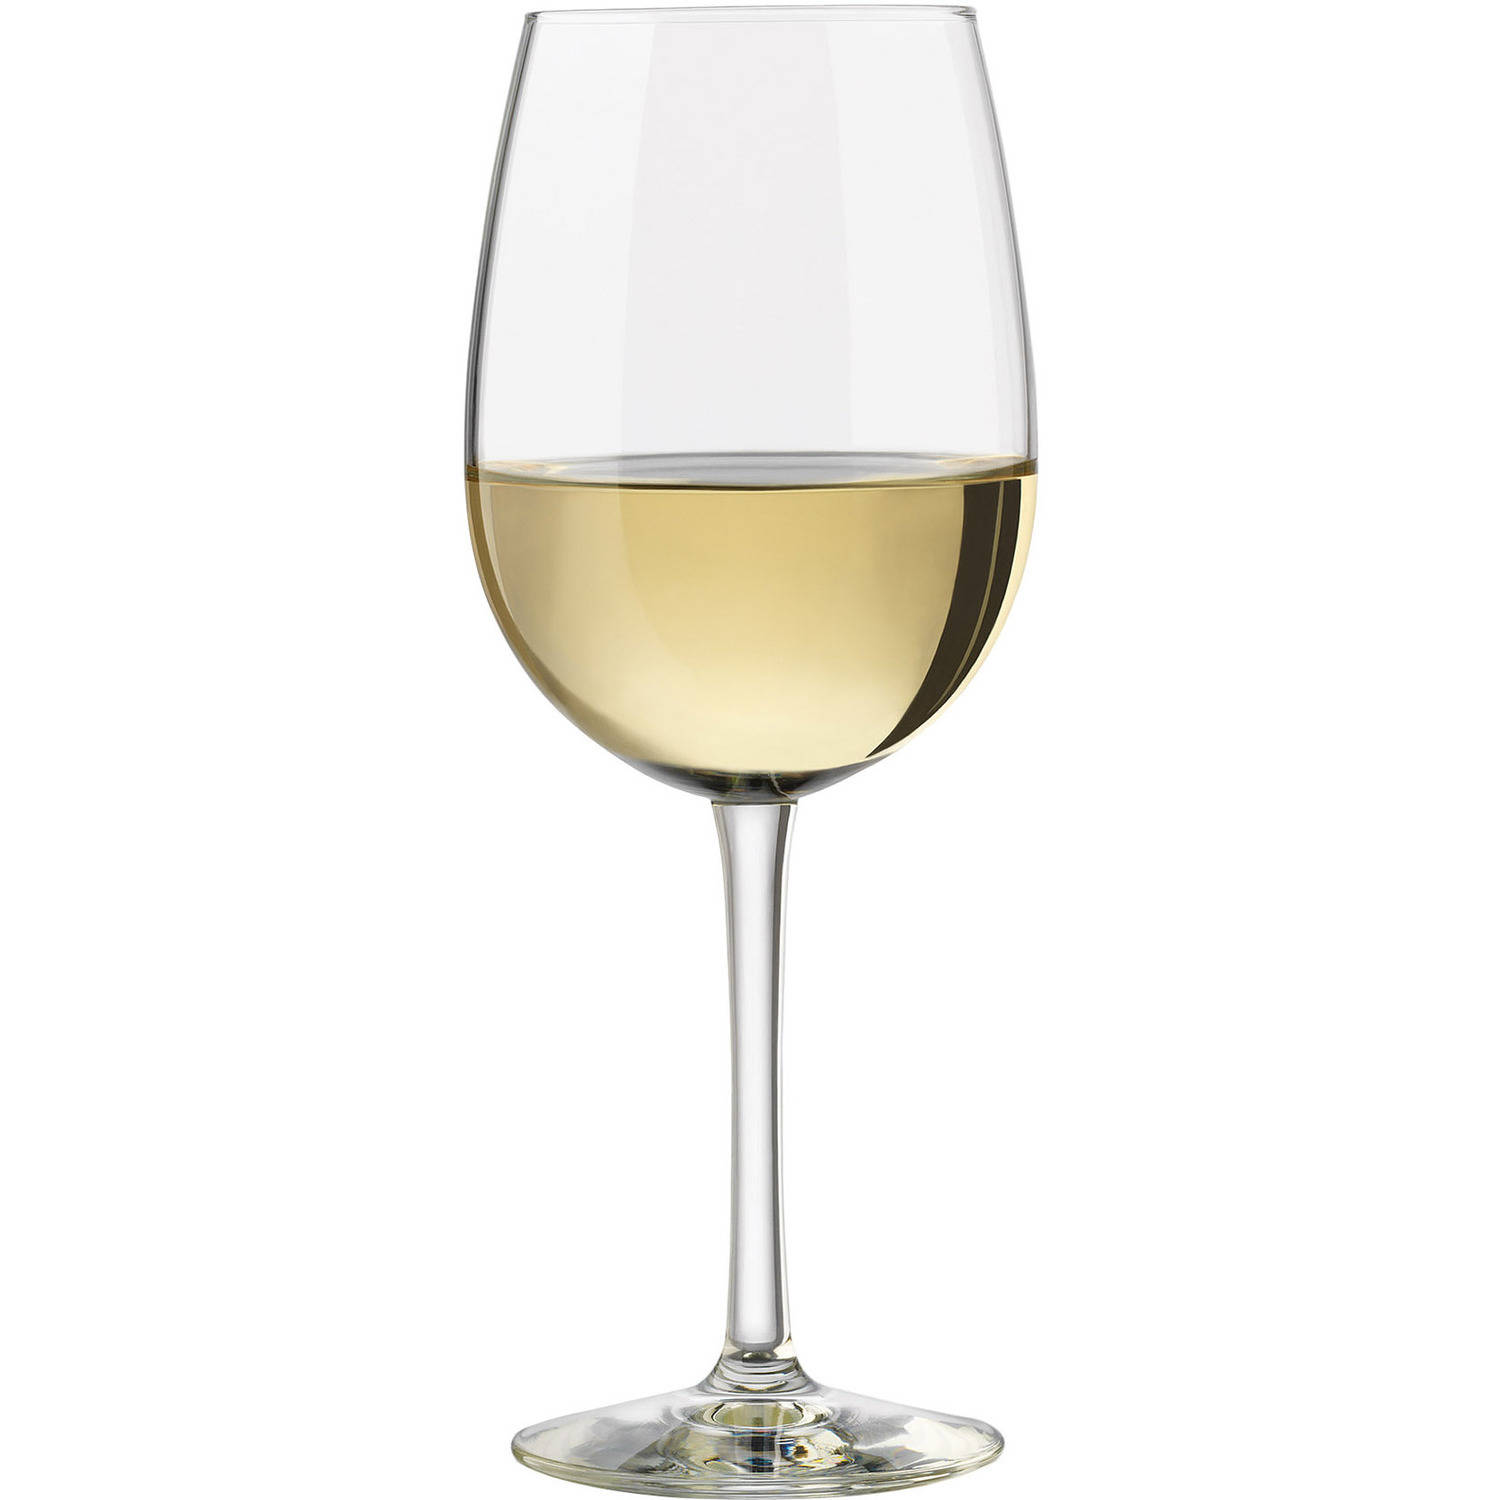 Libbey Vineyard 16 oz Clear Pinot Grigio Glasses, Set of 8 by Libbey Glass Inc